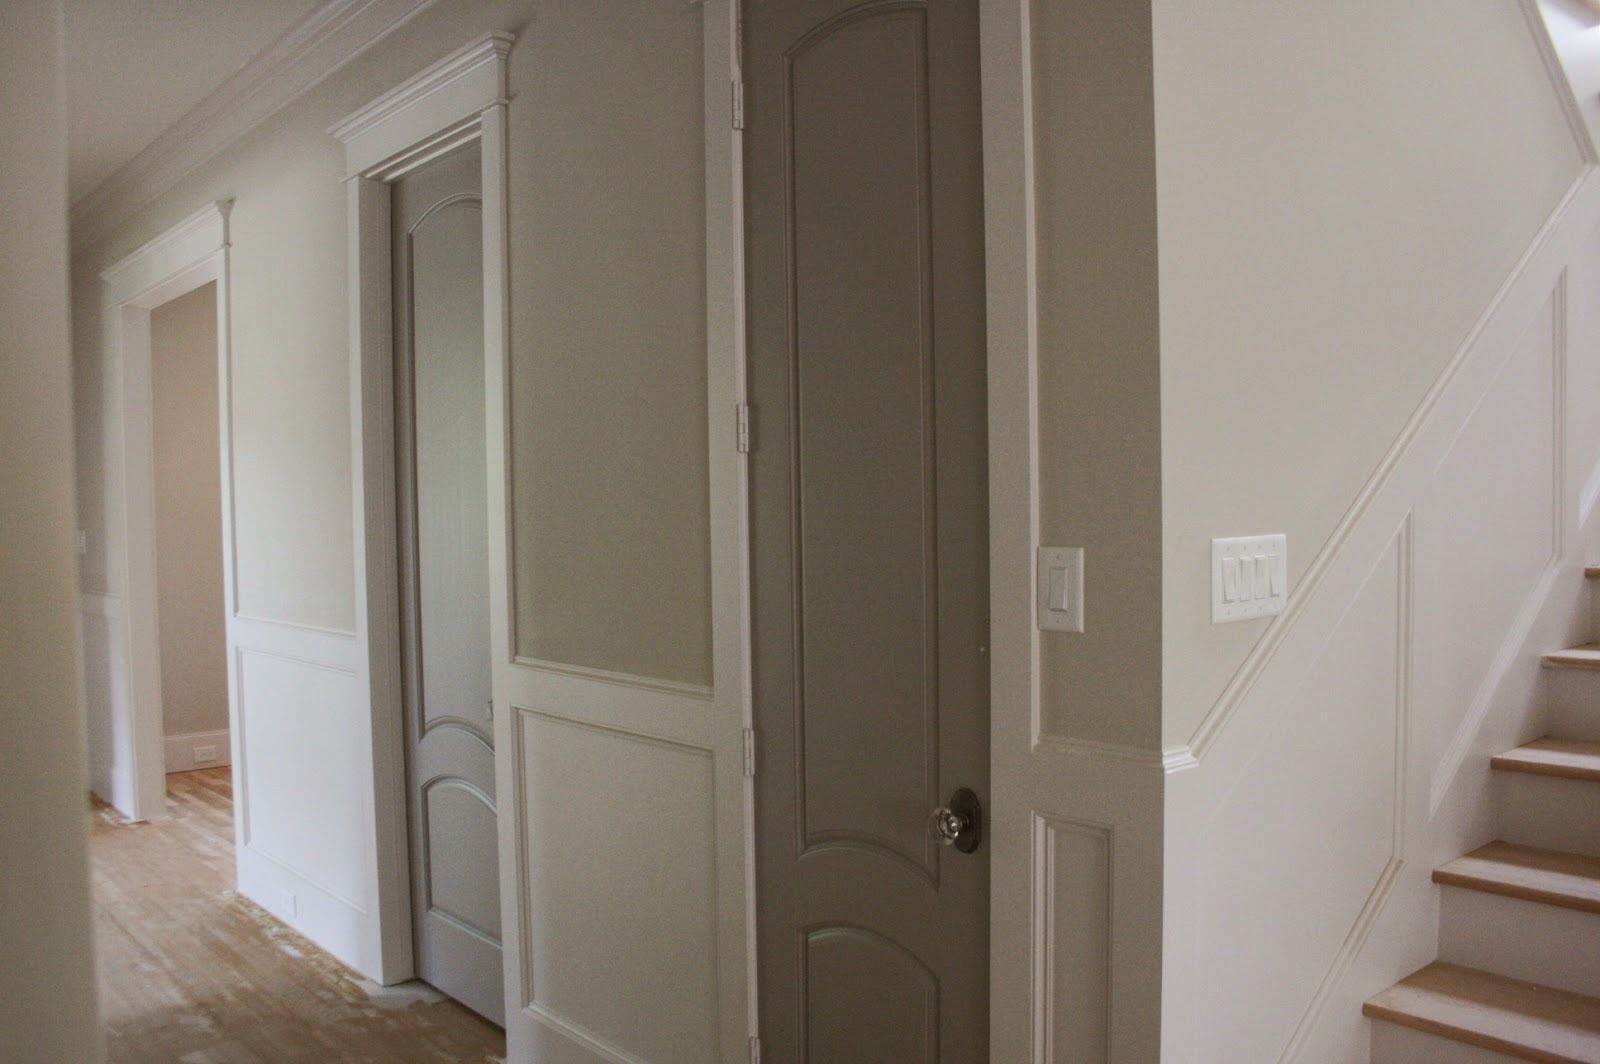 And The Doors, Study Built Ins, And The Closet Built Ins Are SW Pussywillow.